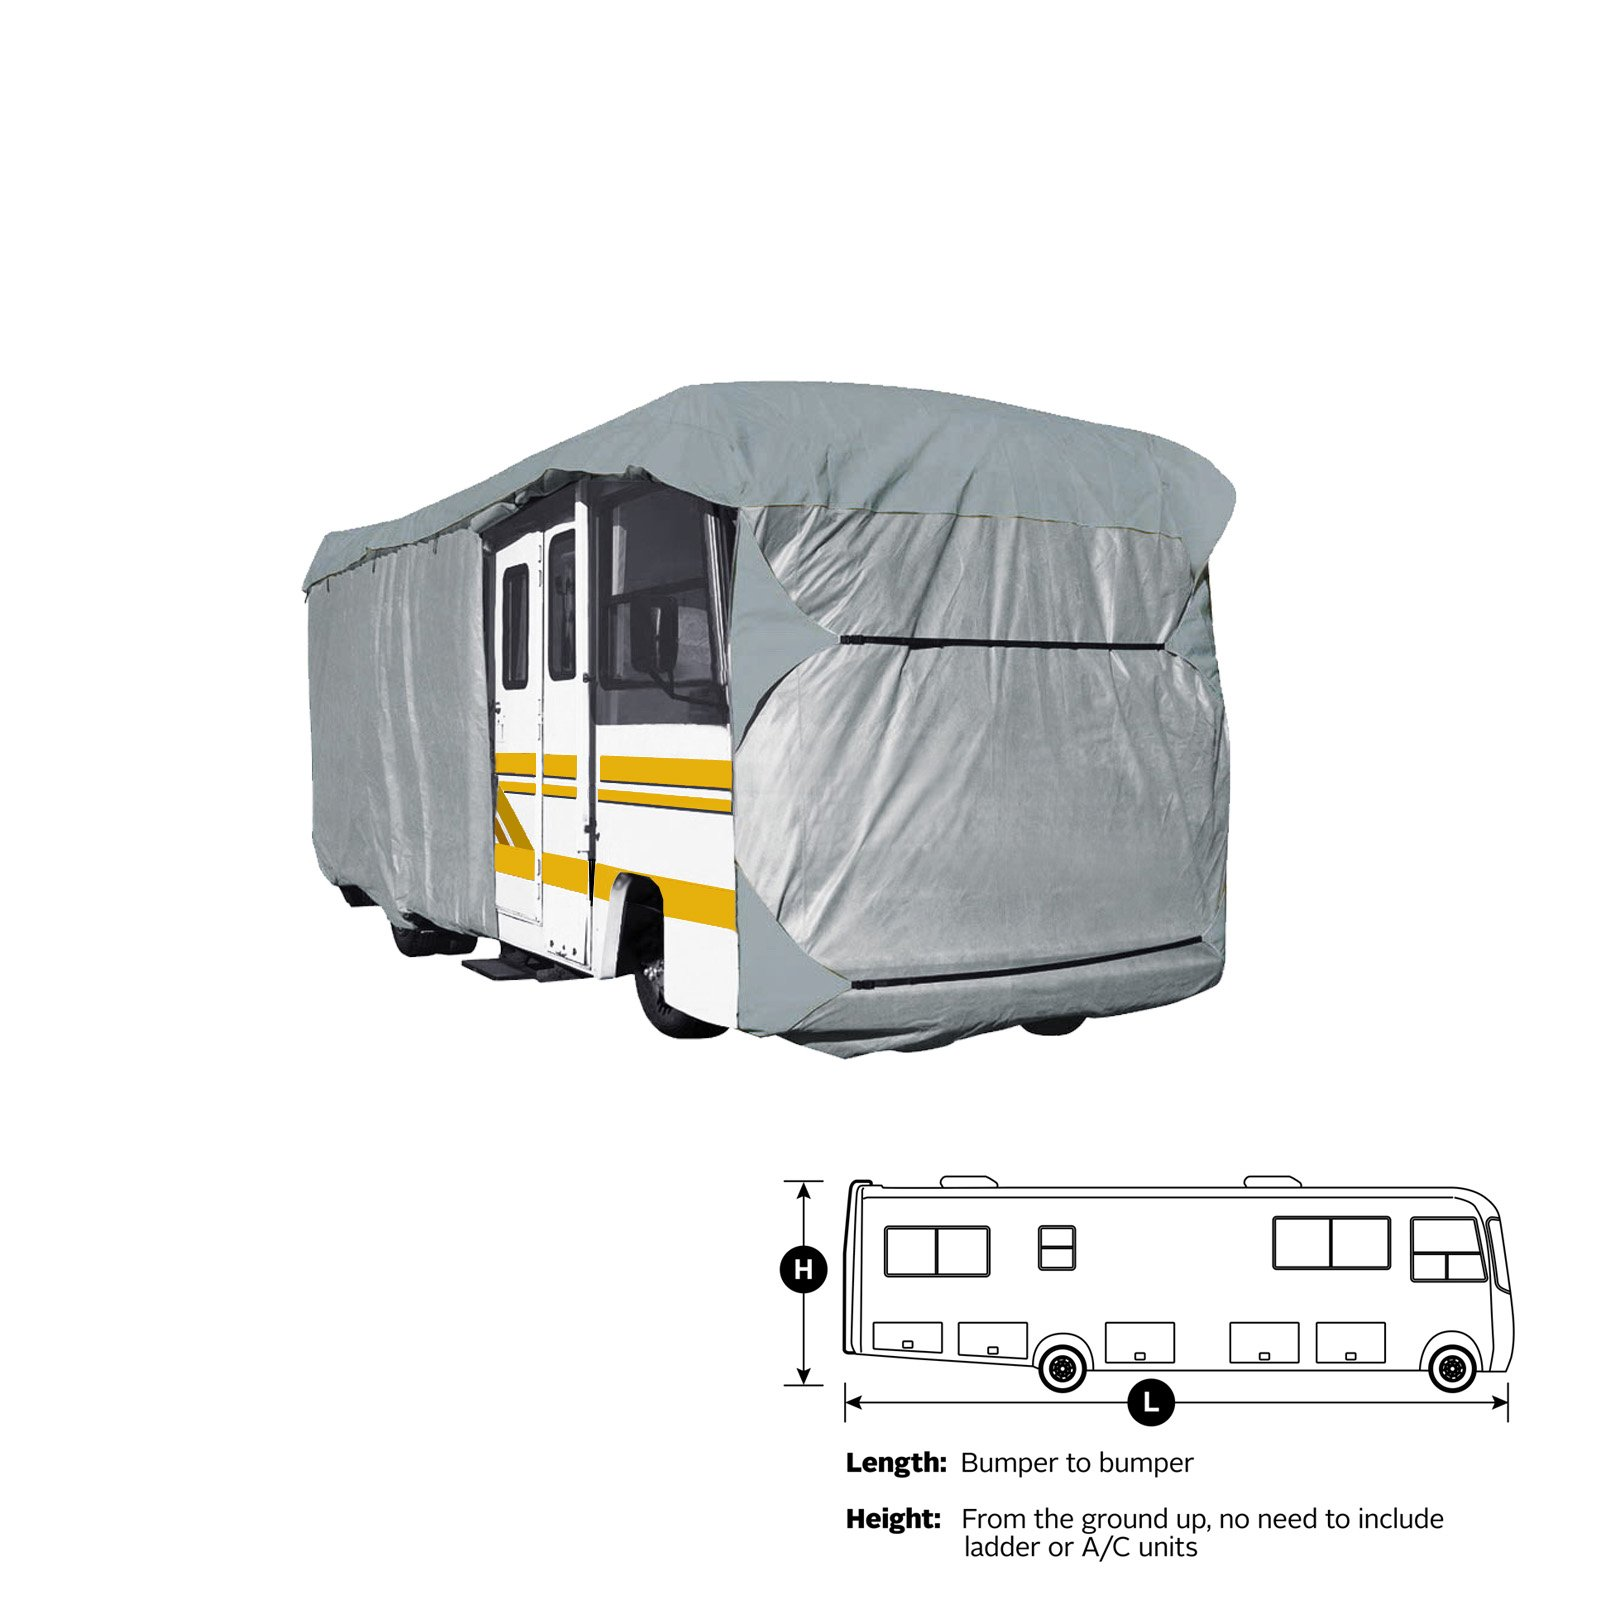 SavvyCraft Heavy Duty Class A RV Motorhome Cover, Fits 34' to 36'L Extra Tall 140'' H by SavvyCraft